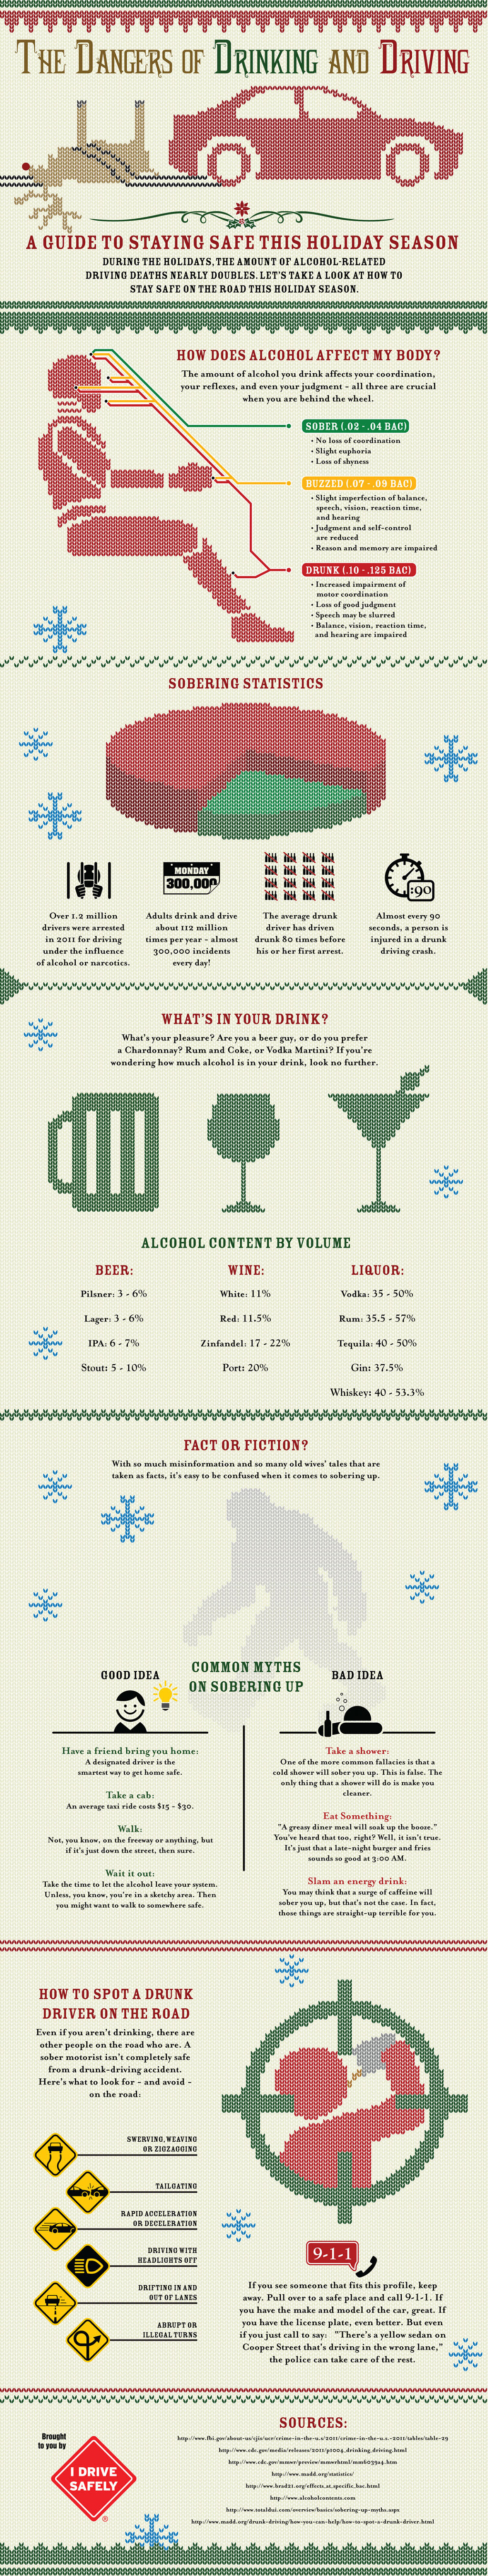 Infographic: The Dangers of Drinking and Driving